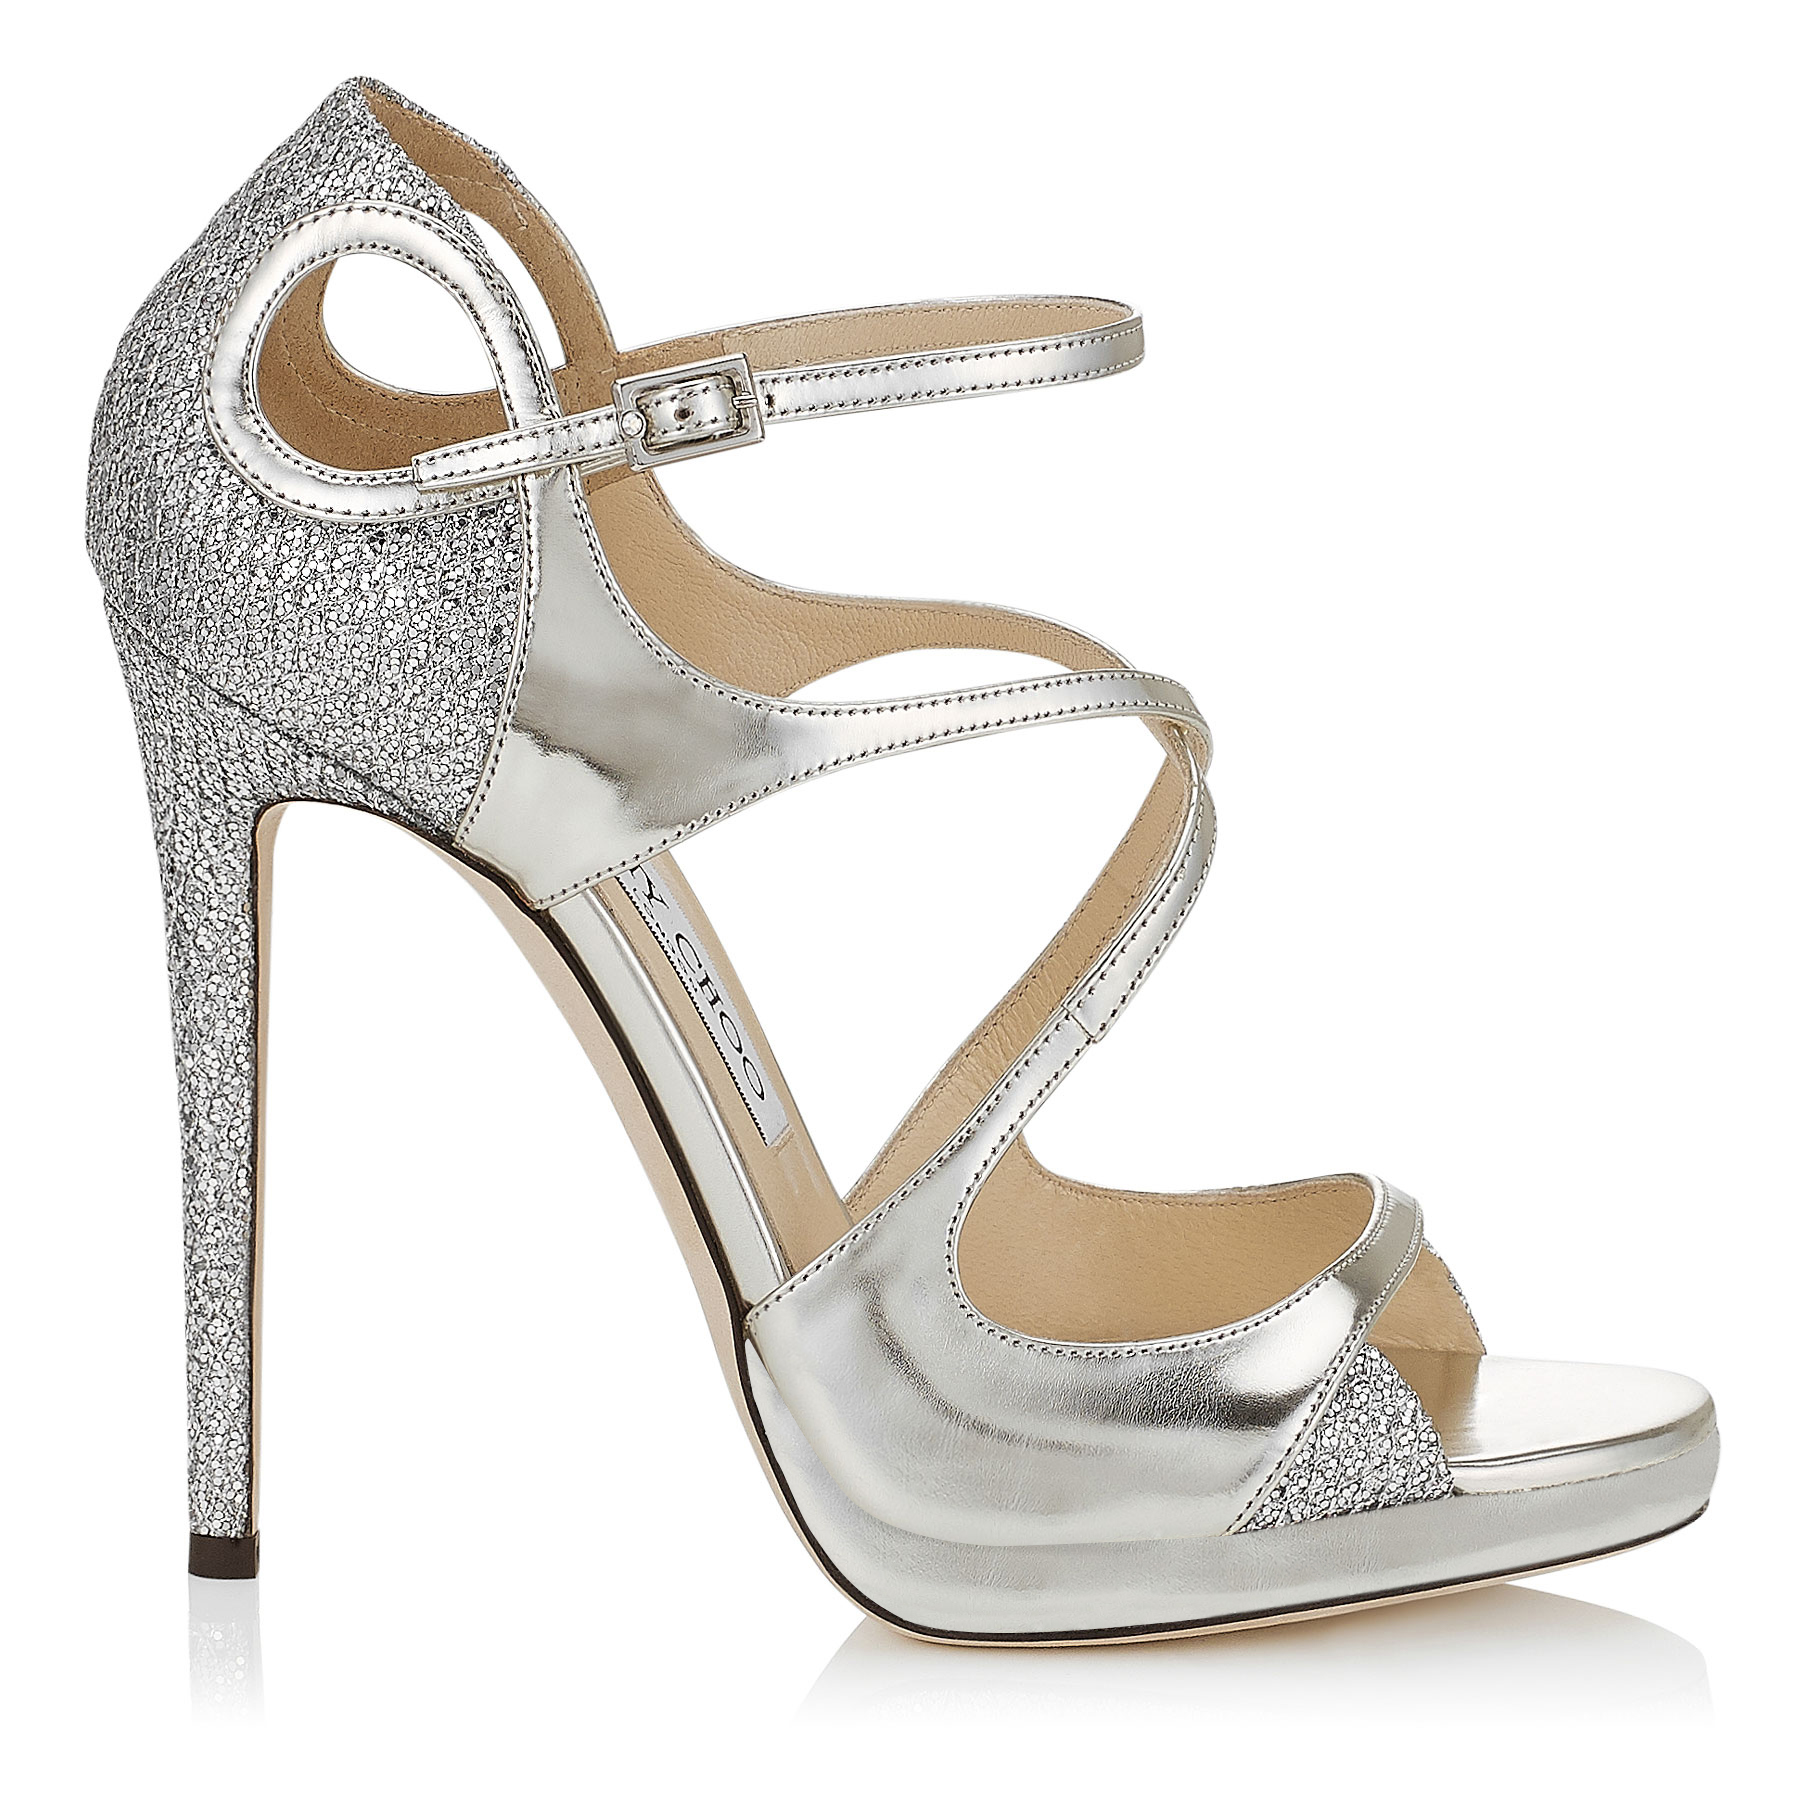 FANCIE 120 Silver Glitter Fabric and Mirror Leather Platform Sandals